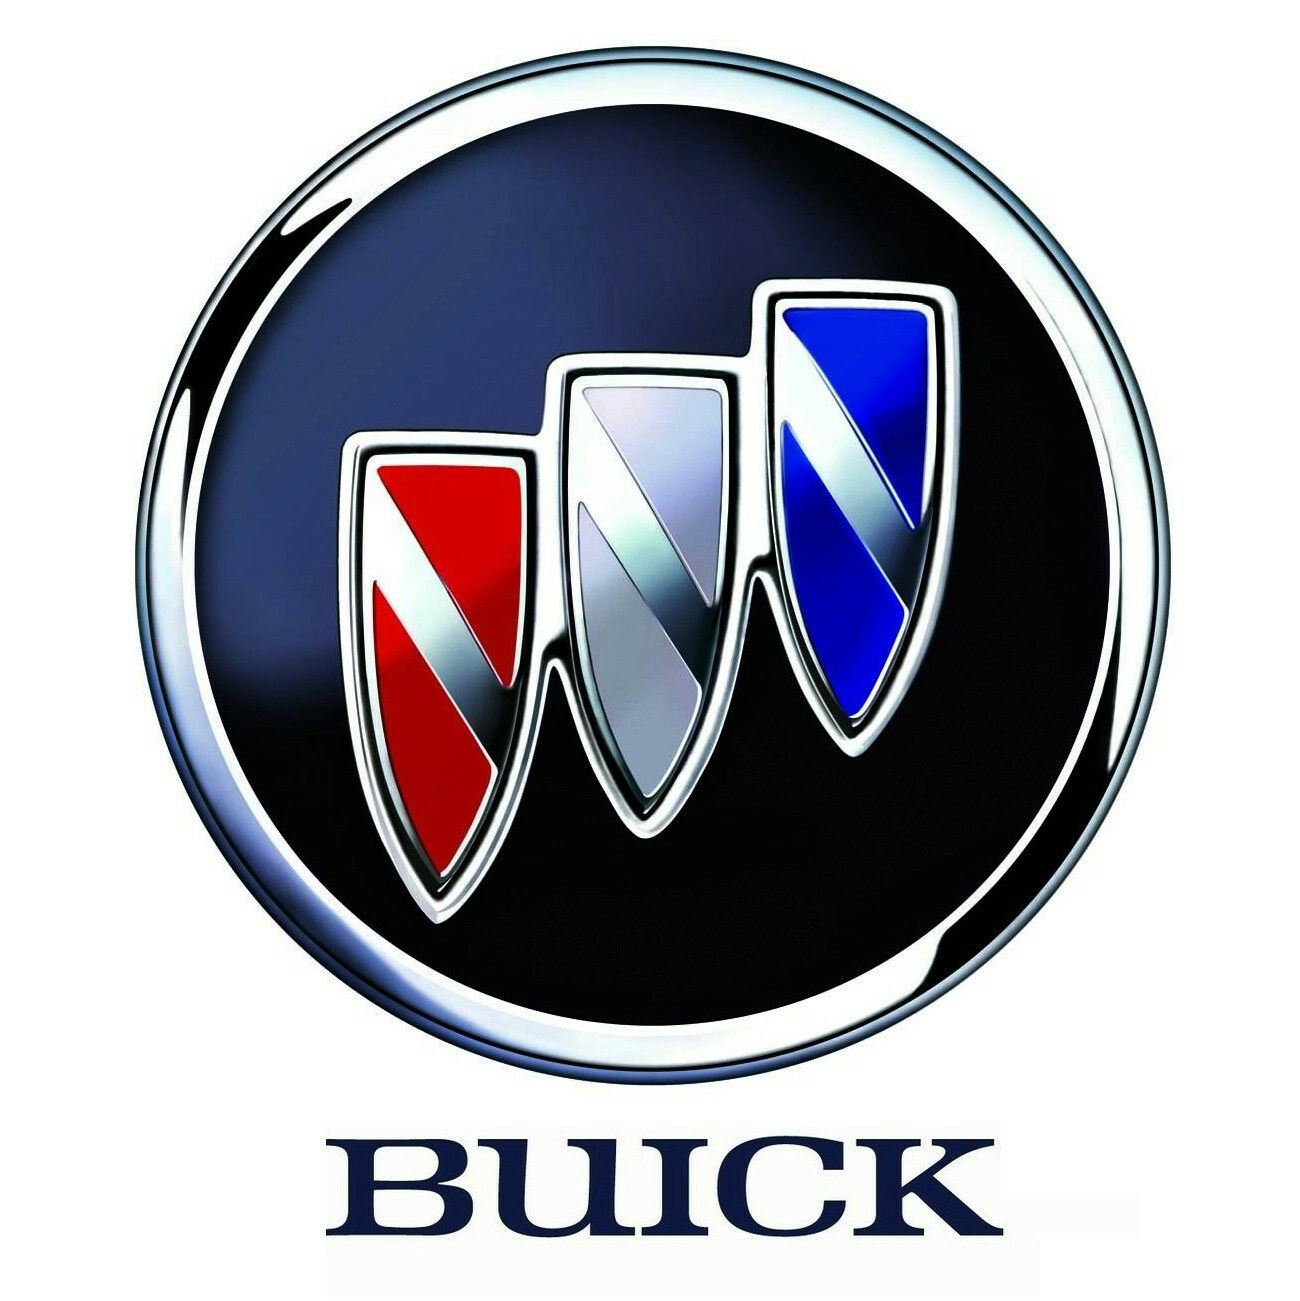 Buick Logo Buick Car Symbol Meaning And History Car Brand